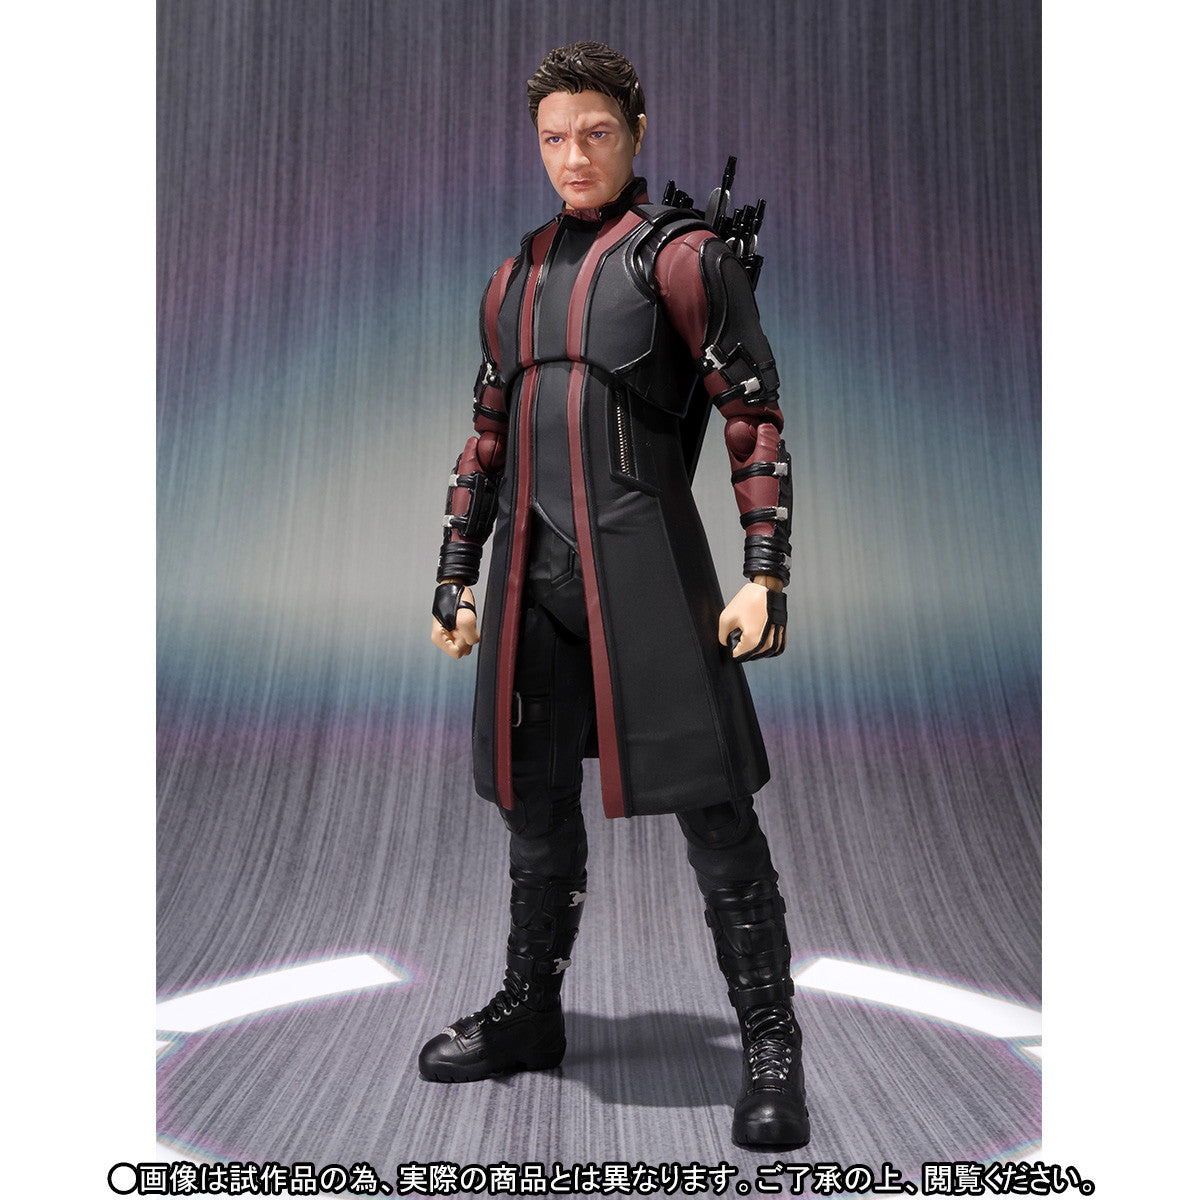 S.H.Figuarts - Avengers: Age of Ultron - Hawkeye (TamashiiWeb Exclusive) - Marvelous Toys - 3